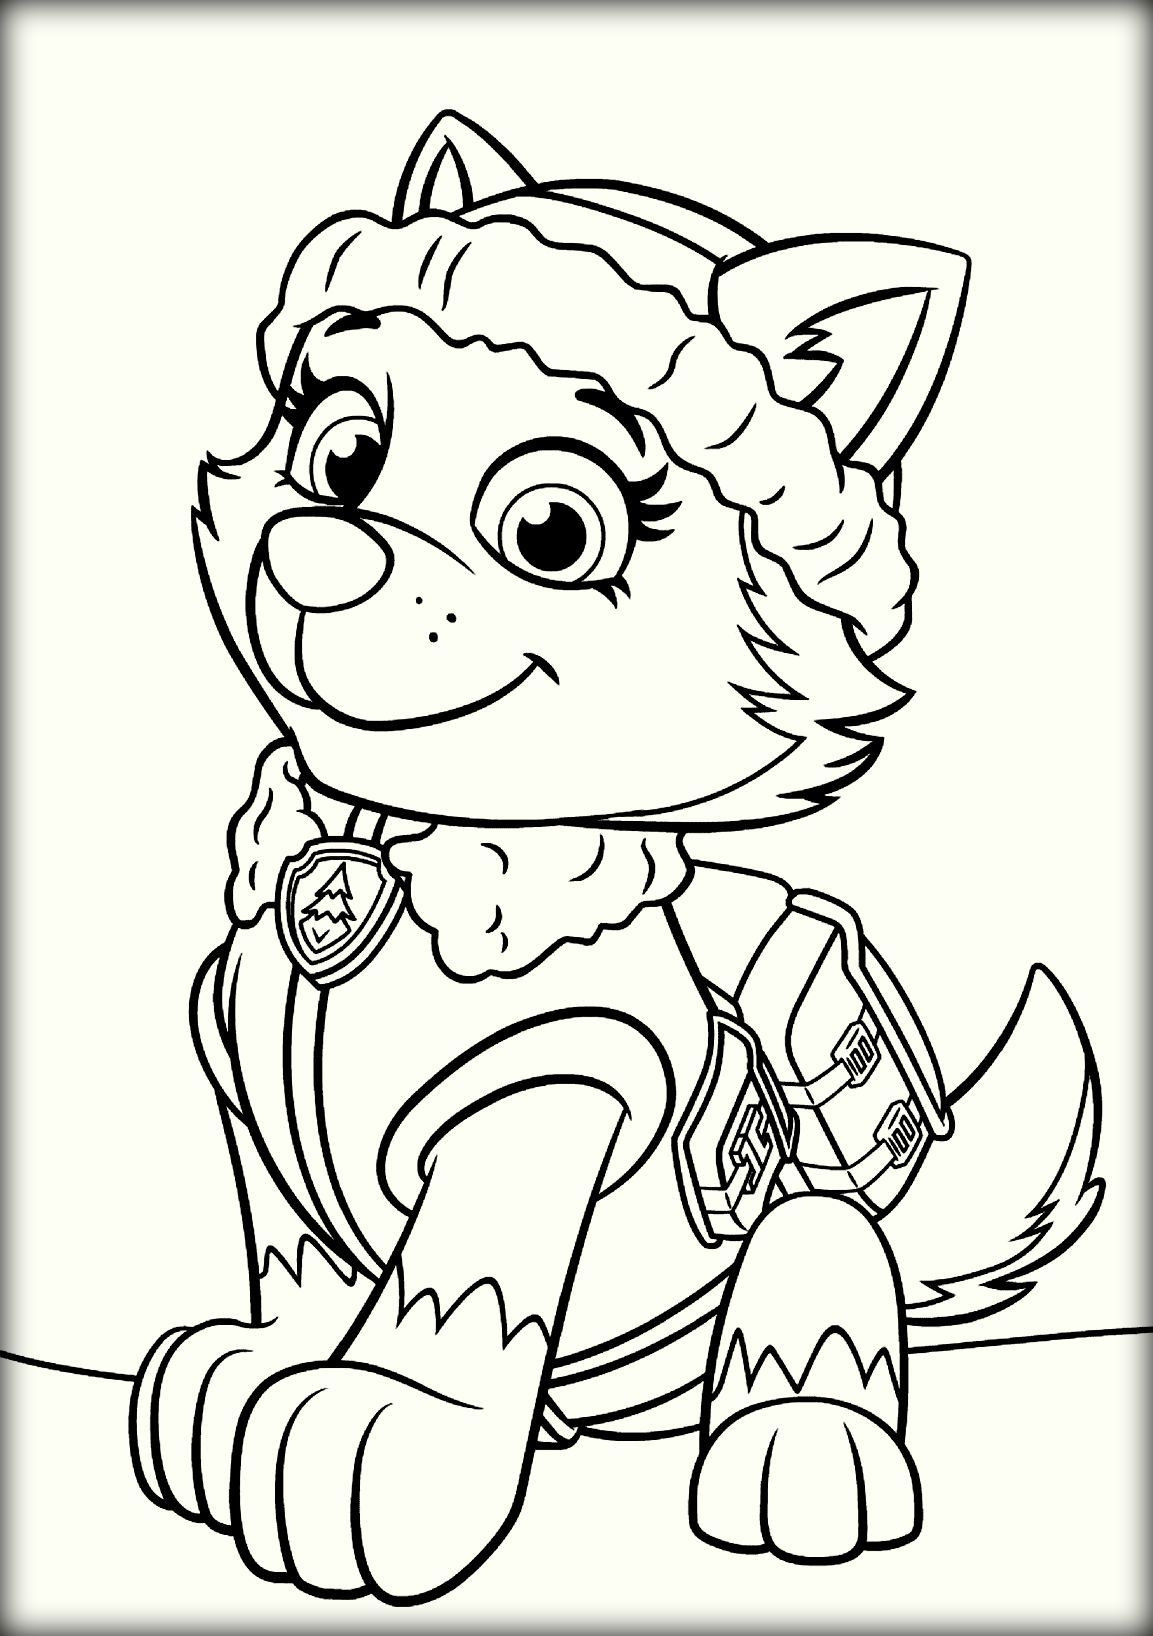 Paw Patrol Rocky Ausmalbilder Das Beste Von Inspirational Free Paw Patrol Coloring Pages Coloring Pages Bilder